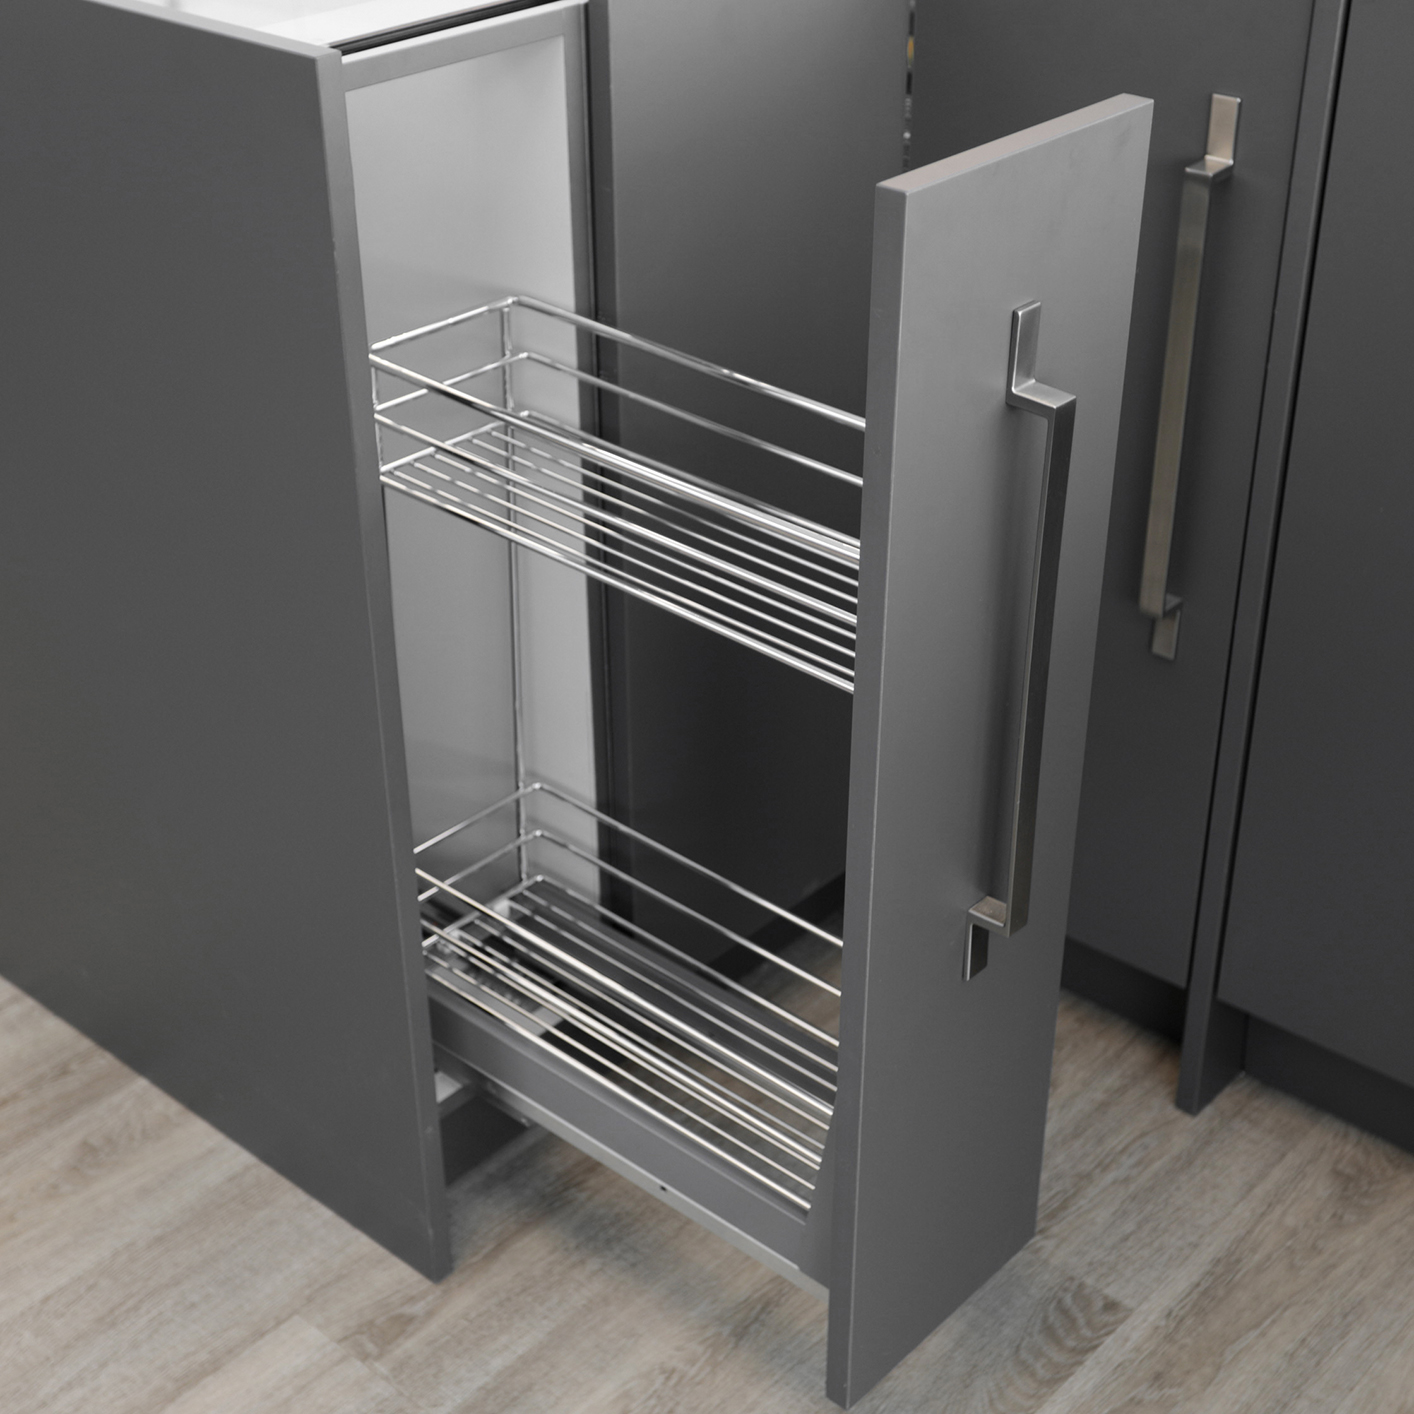 Kitchen Wardrobe Accessories: Bottom Pullout 150mm Soft-Close Wire -- 041-304084-I